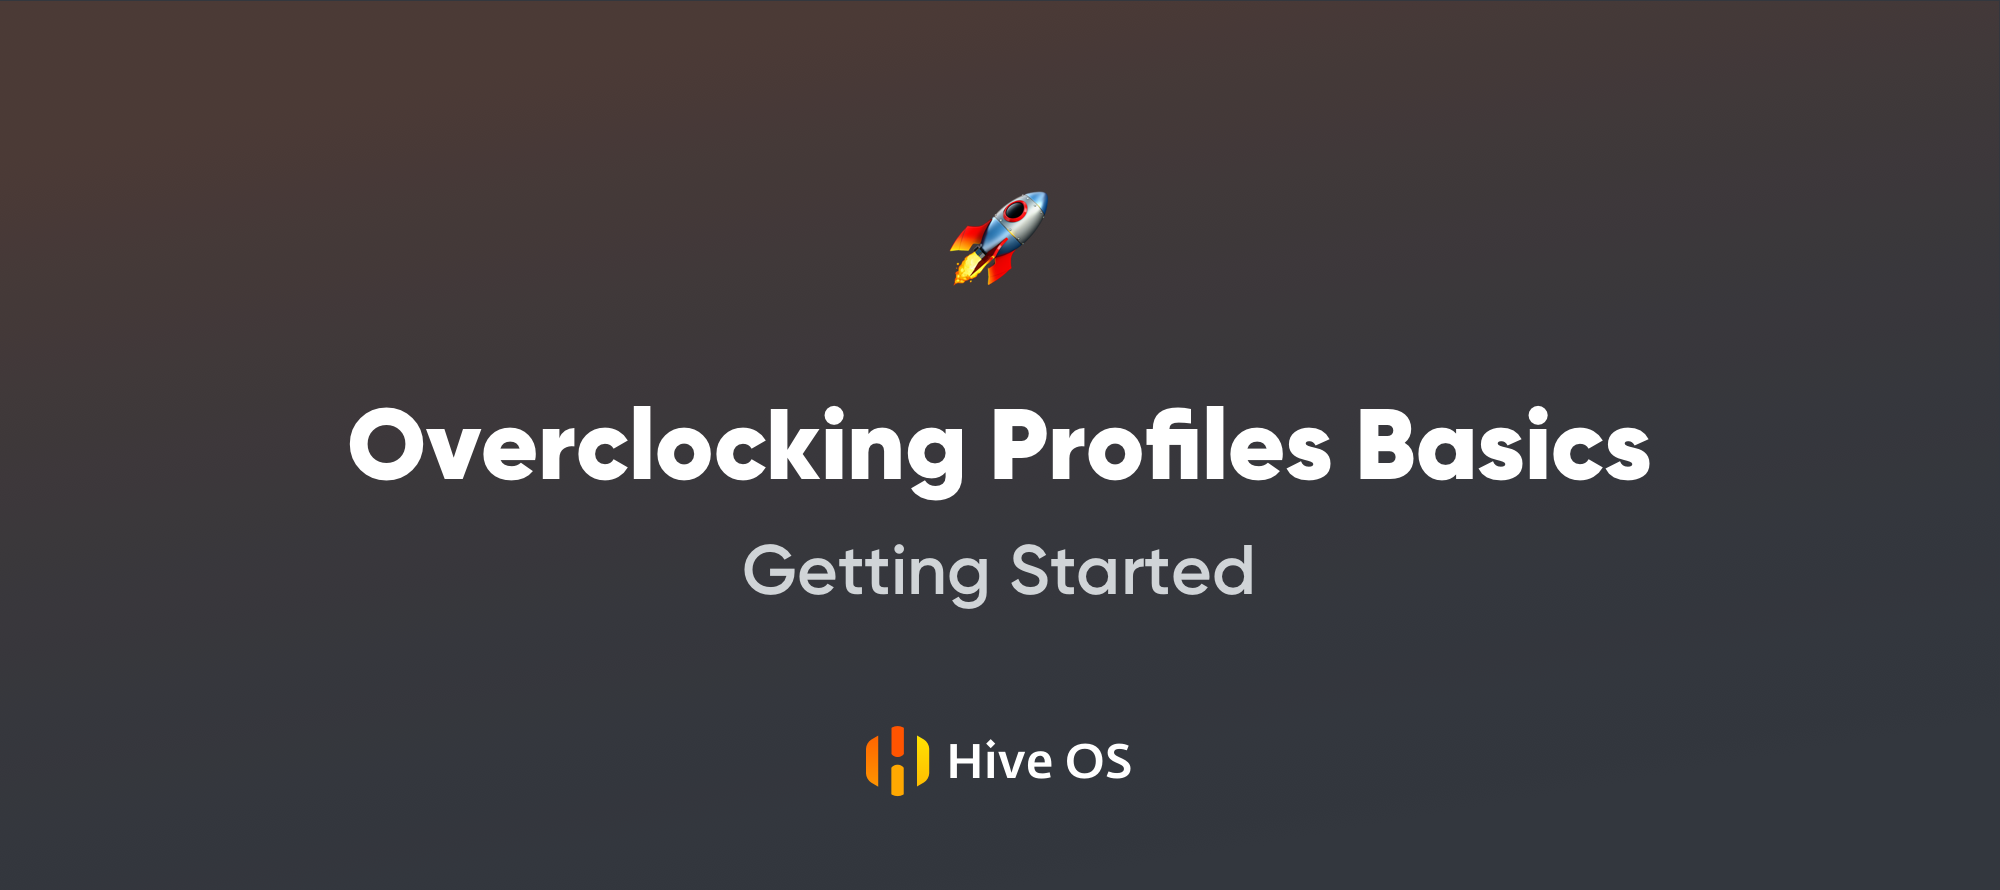 Getting Started with Hive OS — Overclocking Profiles Basics